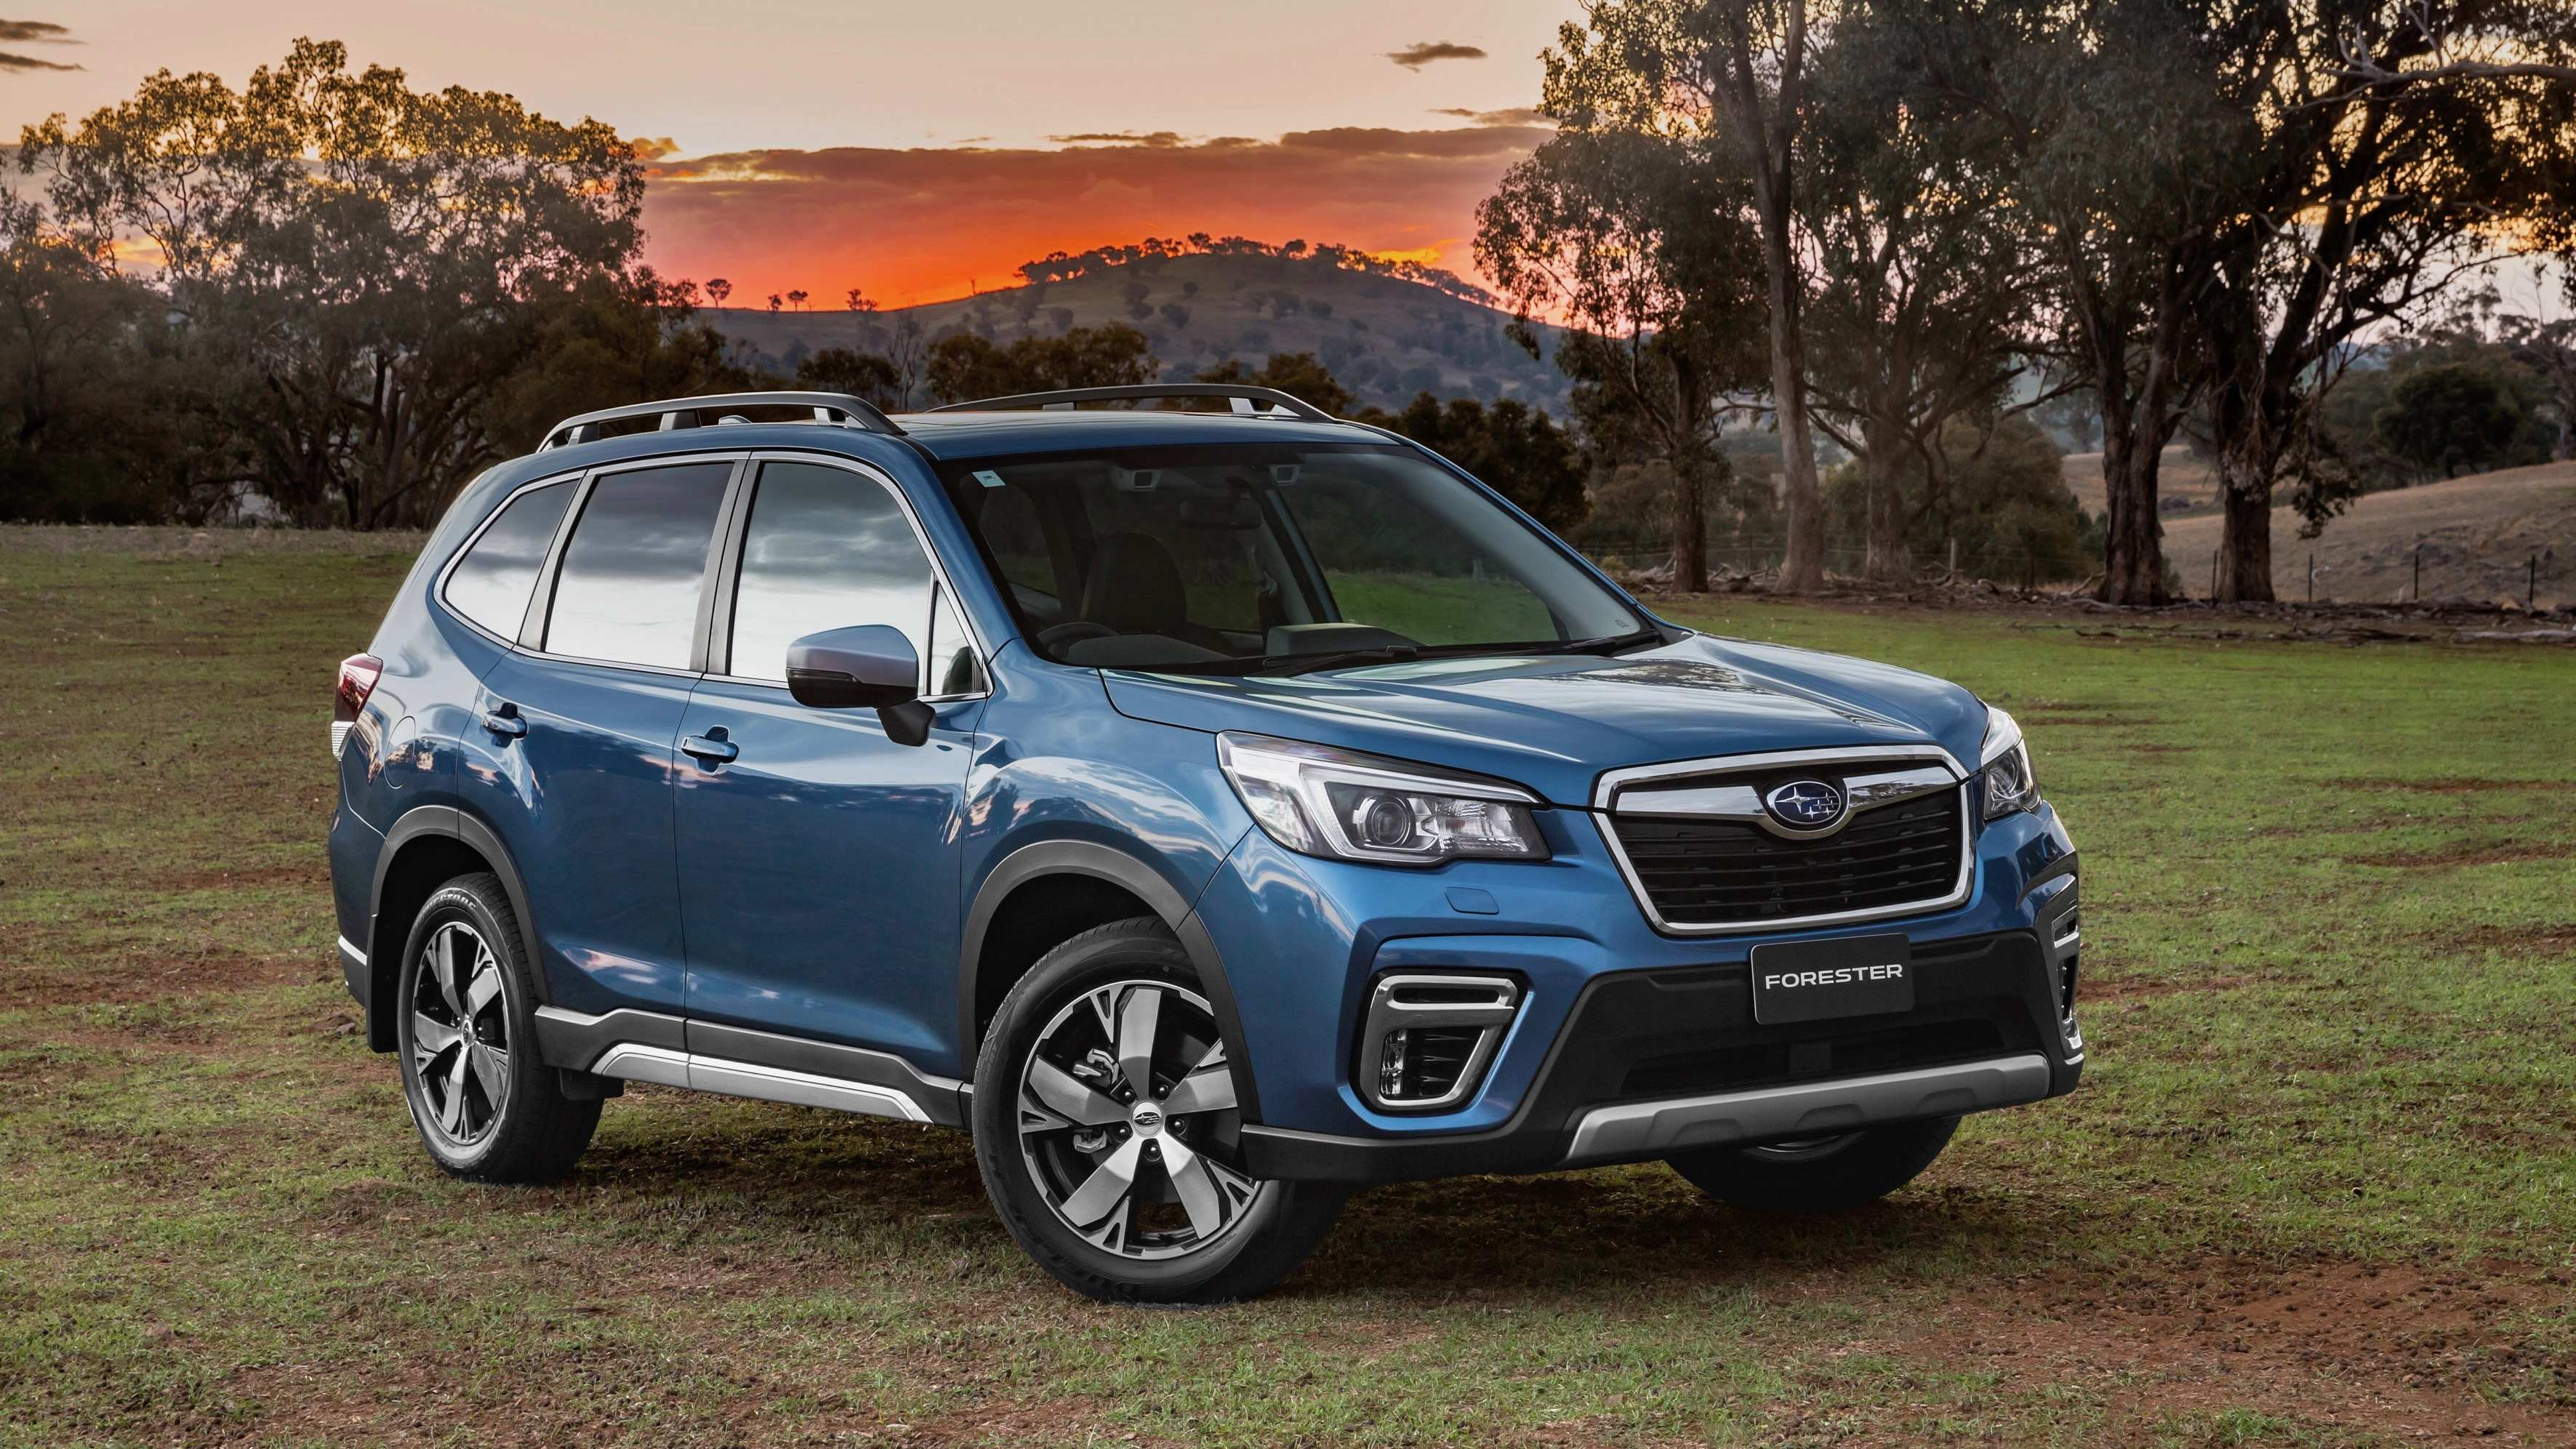 15 Gallery of Next Generation Subaru Forester 2019 Engine for Next Generation Subaru Forester 2019